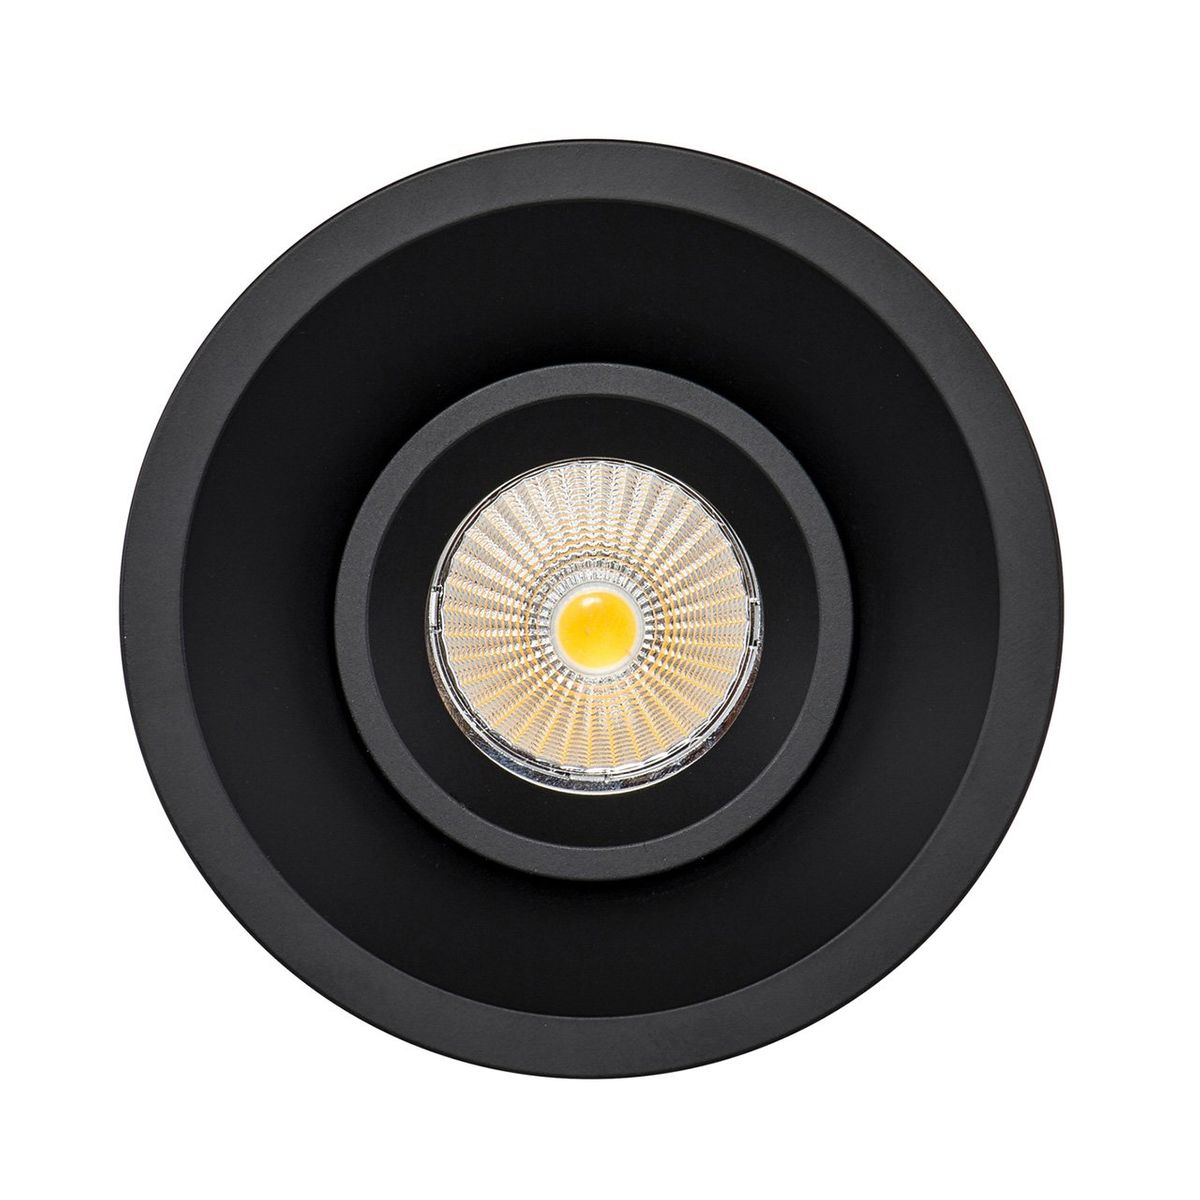 HV5514-BLK - PRIME Black Fixed Deep LED Downlight – Bild 3